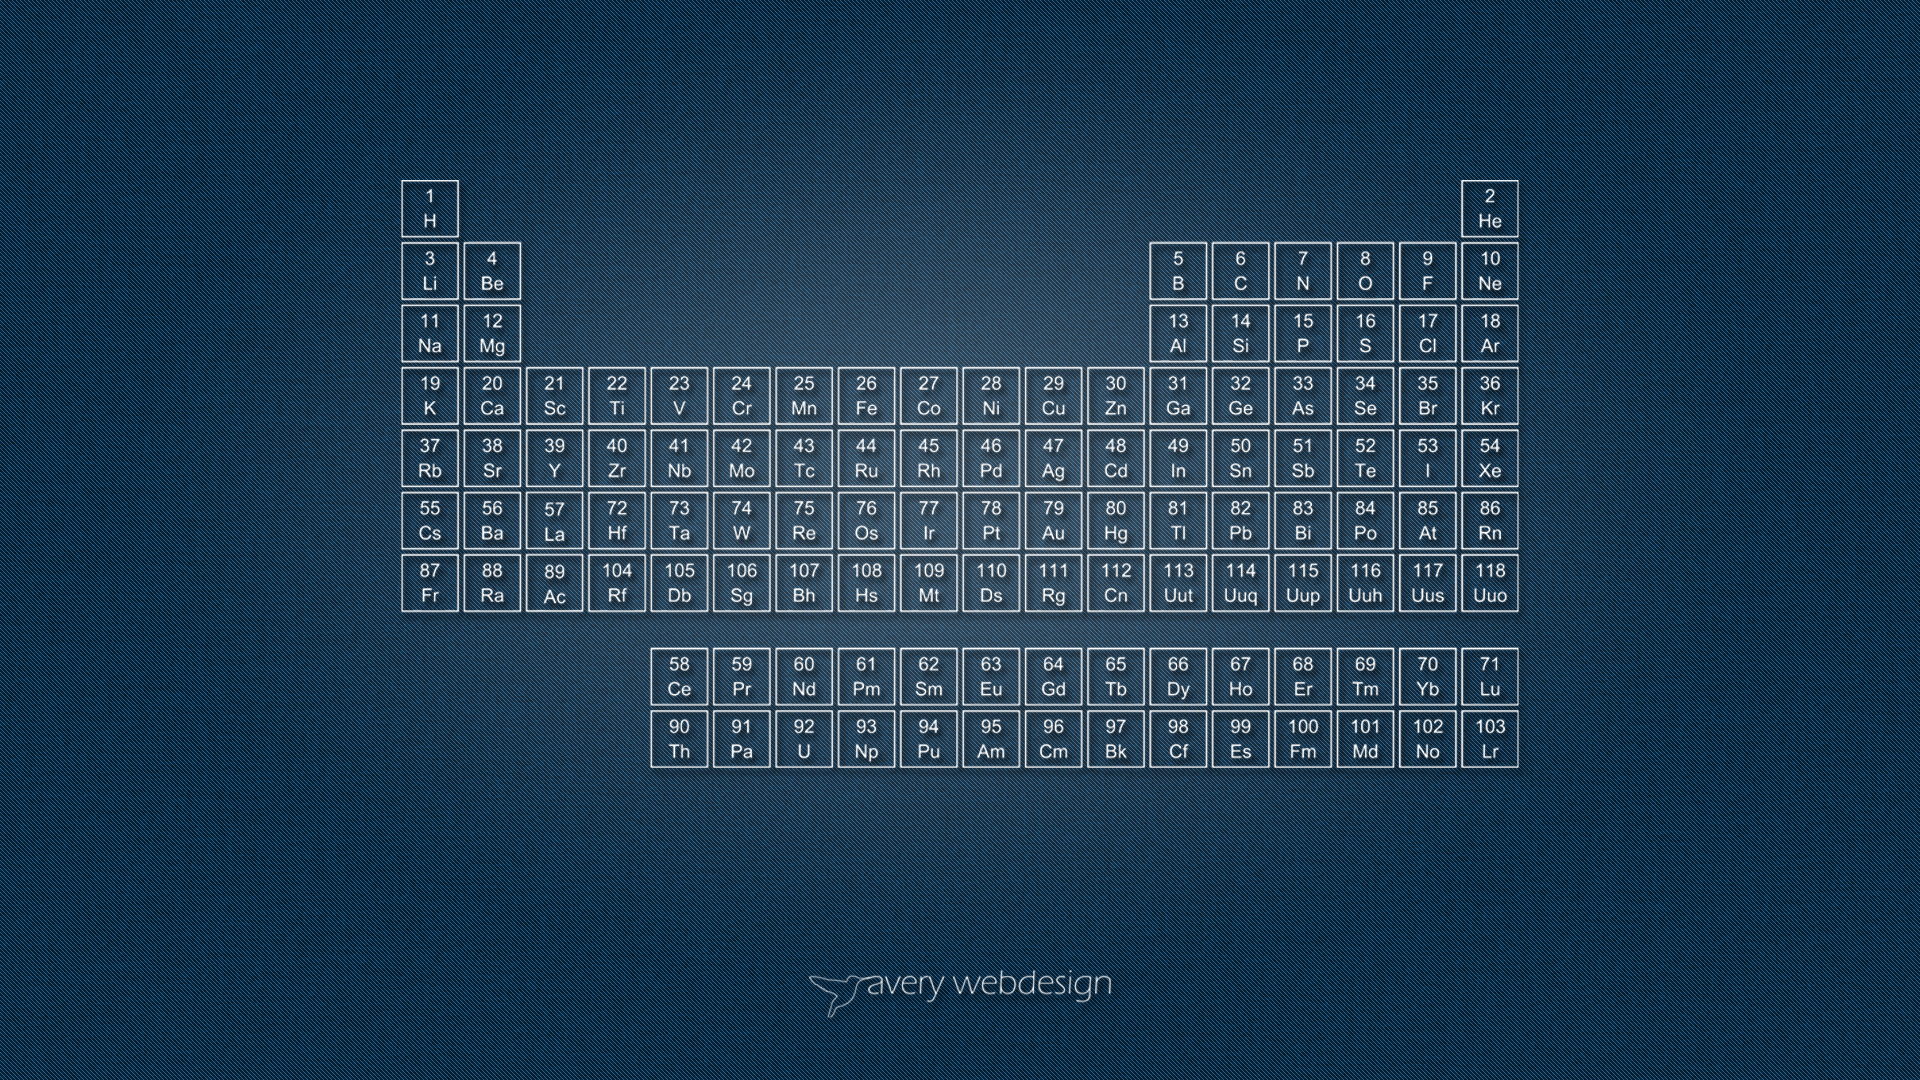 Periodic table denim wallpaper in blue by averywebdesign on deviantart periodic table denim wallpaper in blue by averywebdesign urtaz Gallery